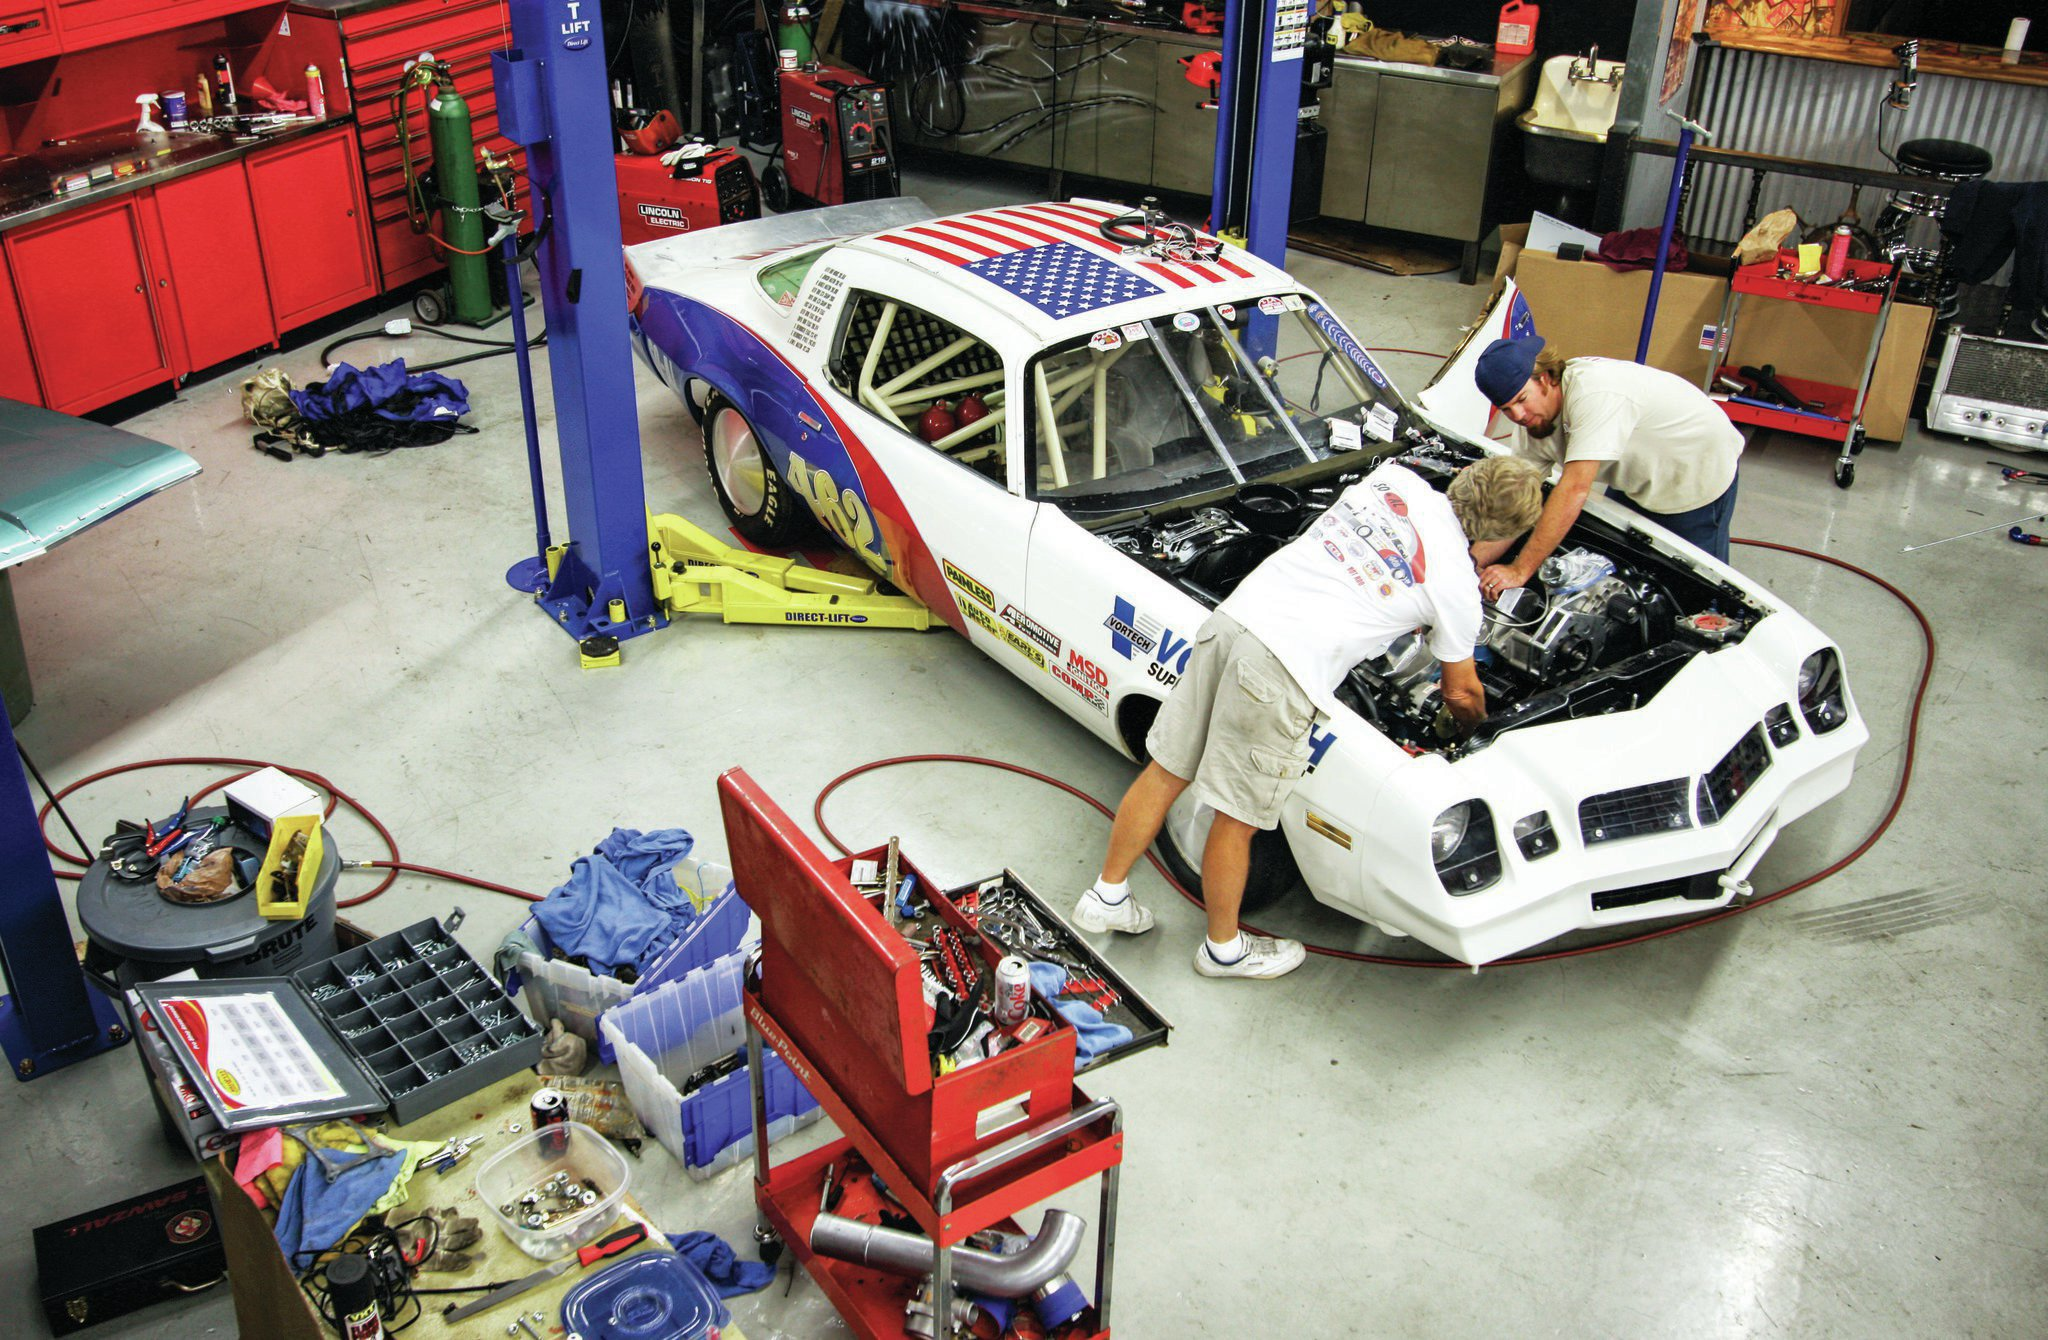 Bonneville's Speed Week is a big deadline, which is why it was all hands on deck back in 2011 when lots of folks pitched in to get the Turk/Freiburger Camaro ready for its runs on the salt.